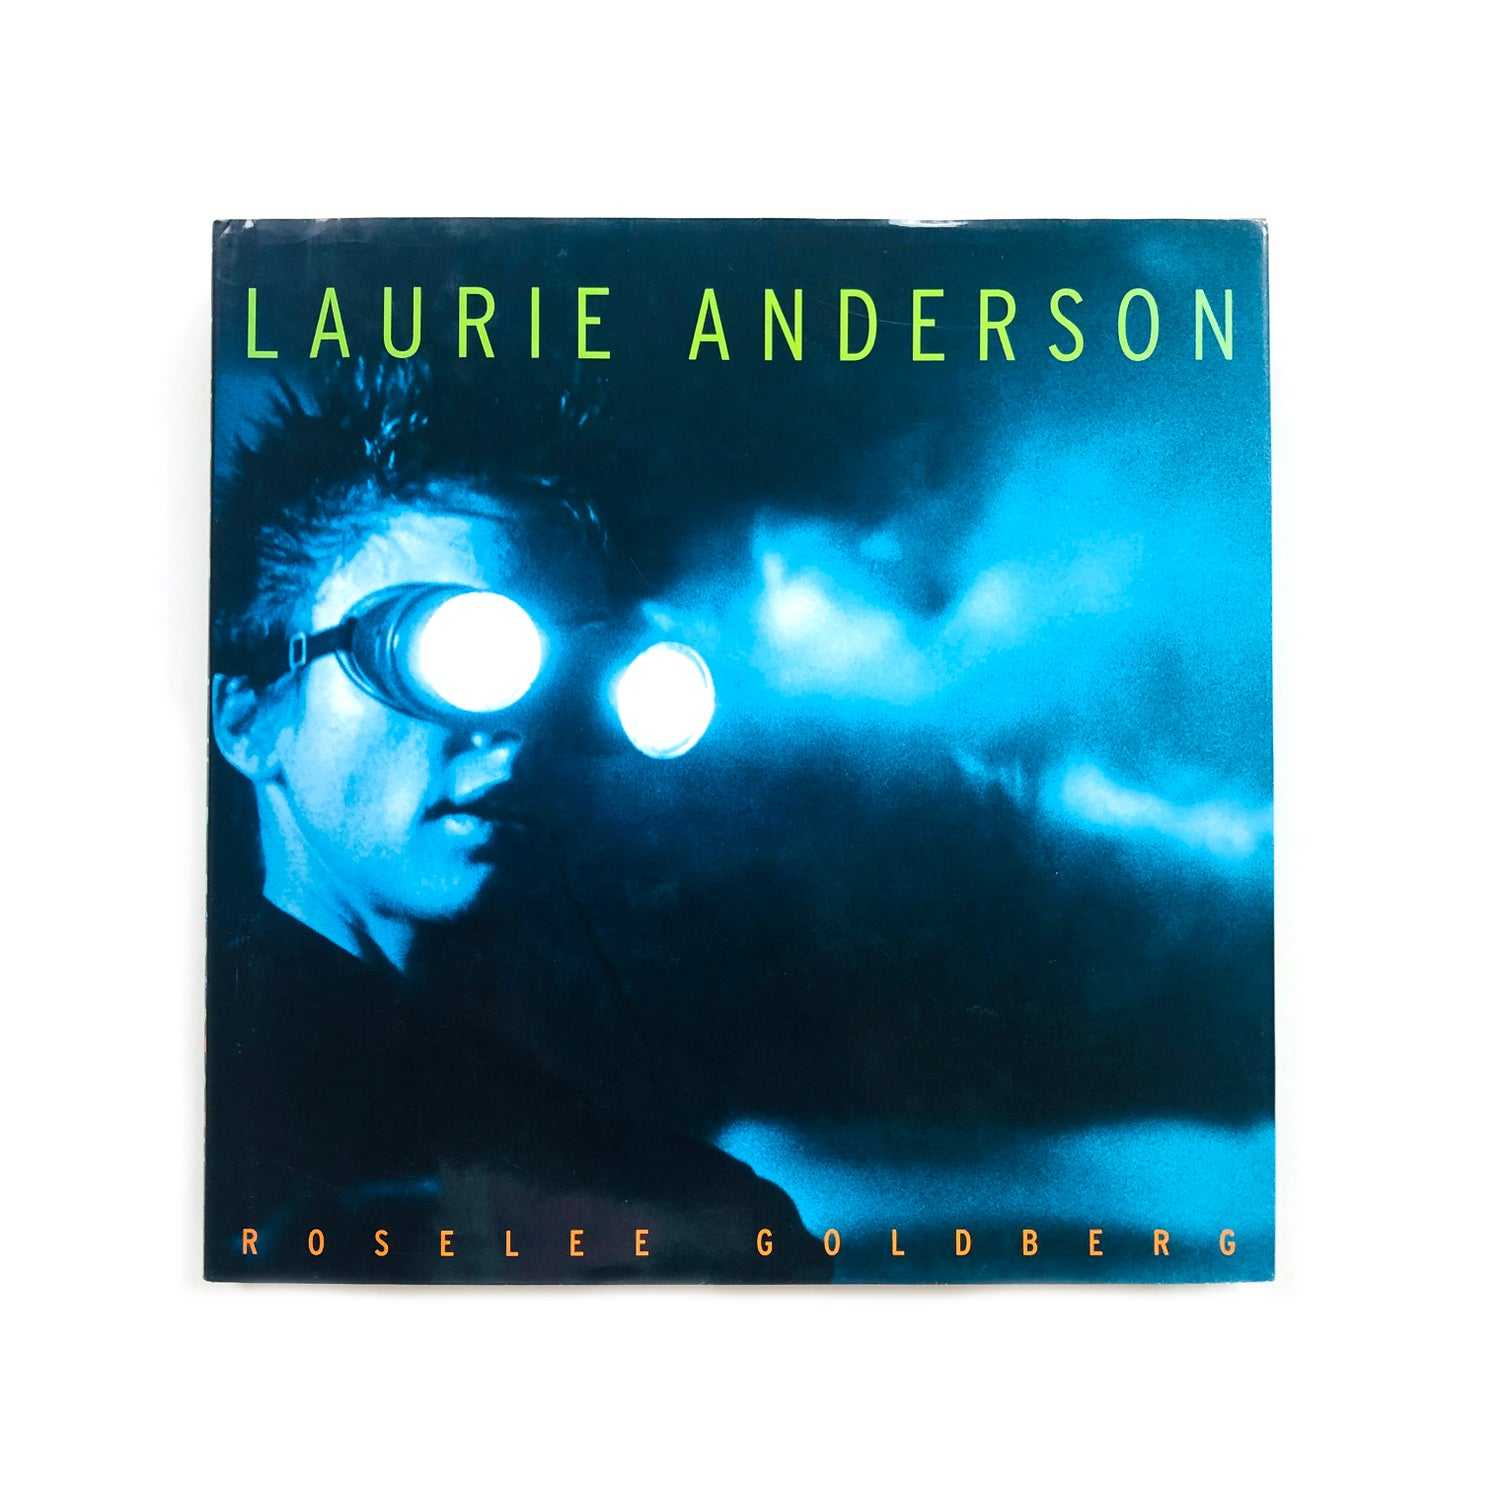 """Image of """"Laurie Anderson"""" by Roselee Goldberg"""